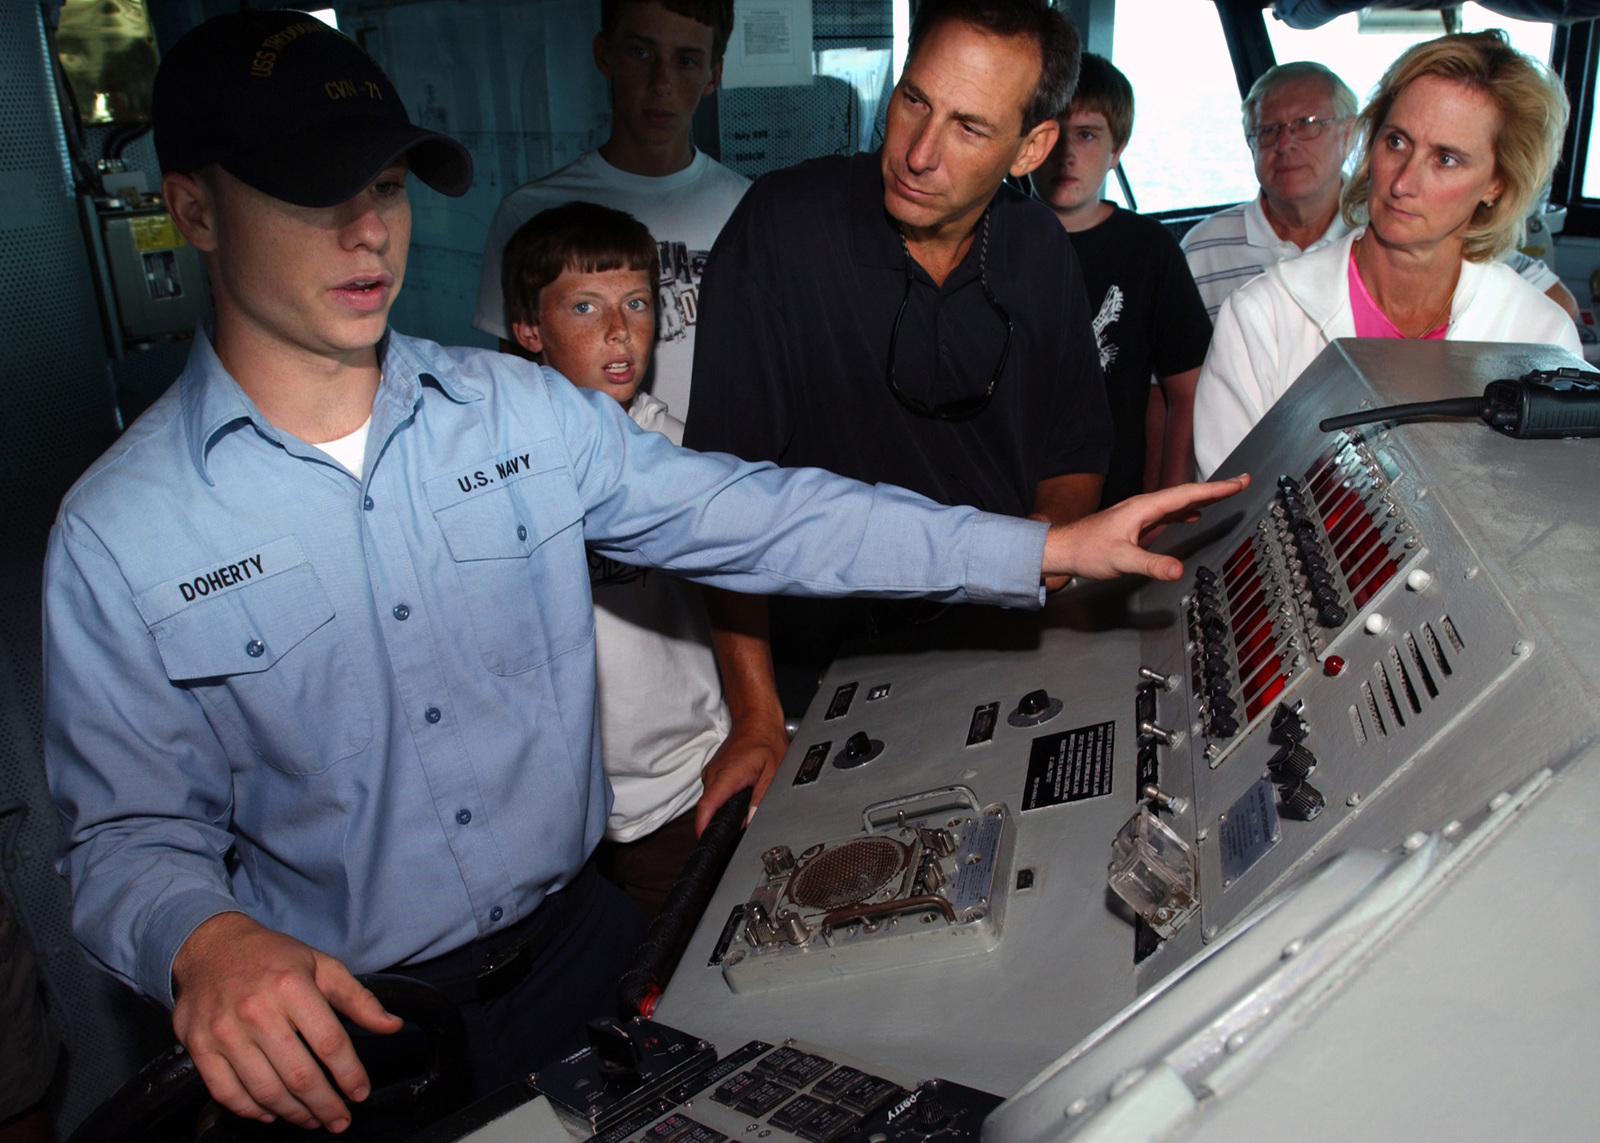 060812-N-0685C-001 (Aug. 12, 2006)US Navy (USN) SEAMAN Doherty (foreground), provides a tour of the bridge on the USN Nimitz Class Aircraft Carrier, USS THEODORE ROOSEVELT (CVN 71) for a Friends And Family Day Cruise. The ROOSEVELT is currently underway in the Atlantic Ocean maintaining qualifications as part of the Fleet Response Plan. U.S. Navy photo by Mass Communication SPECIALIST SEAMAN Javier Capella (RELEASED)